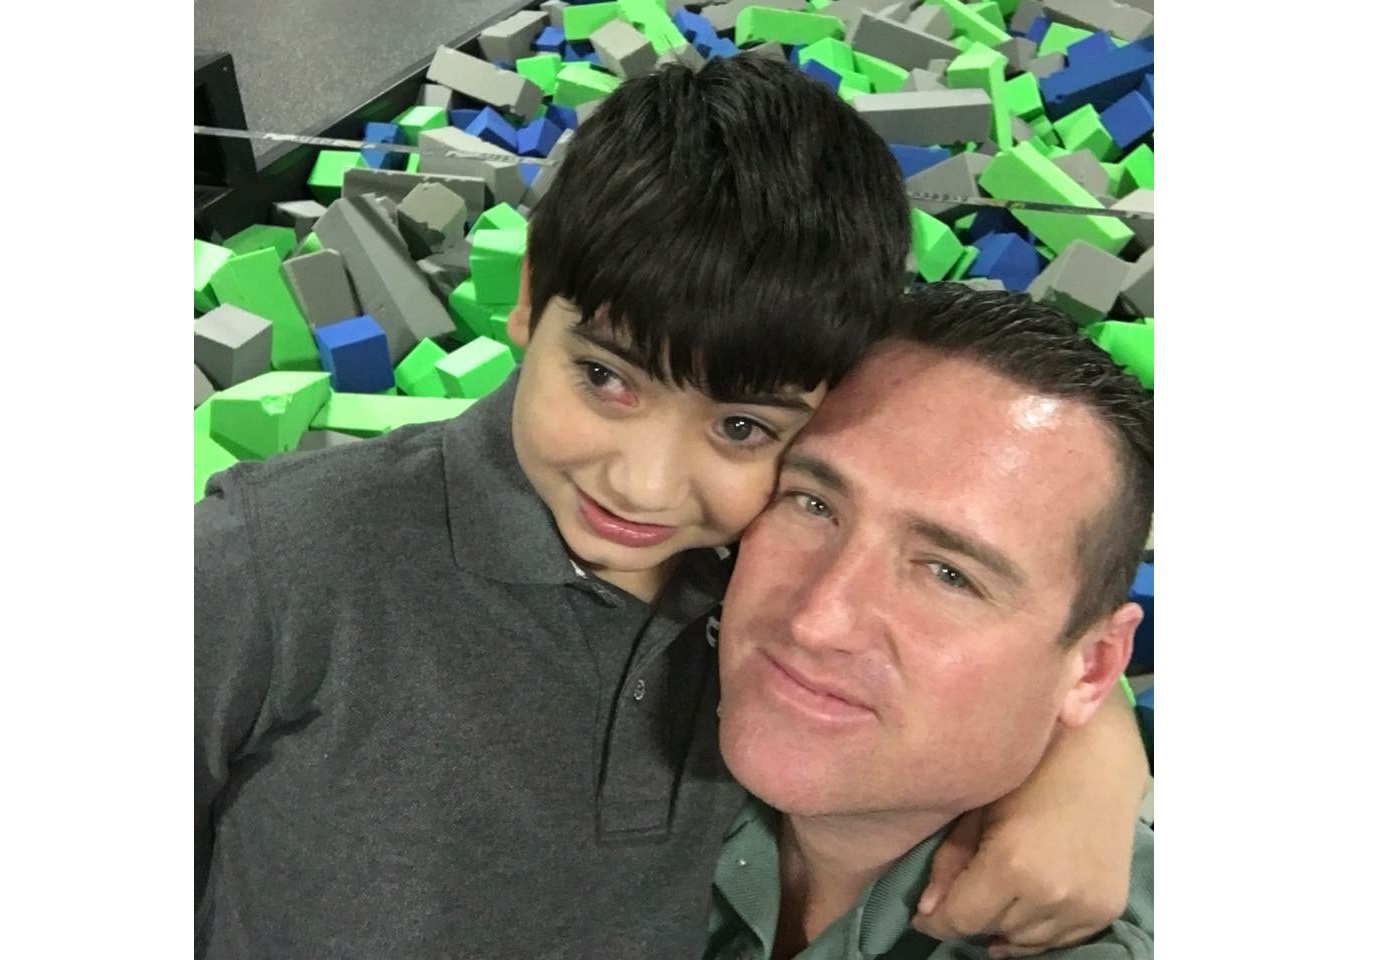 Jonathan Logston with his son (Courtesy of Logston family)